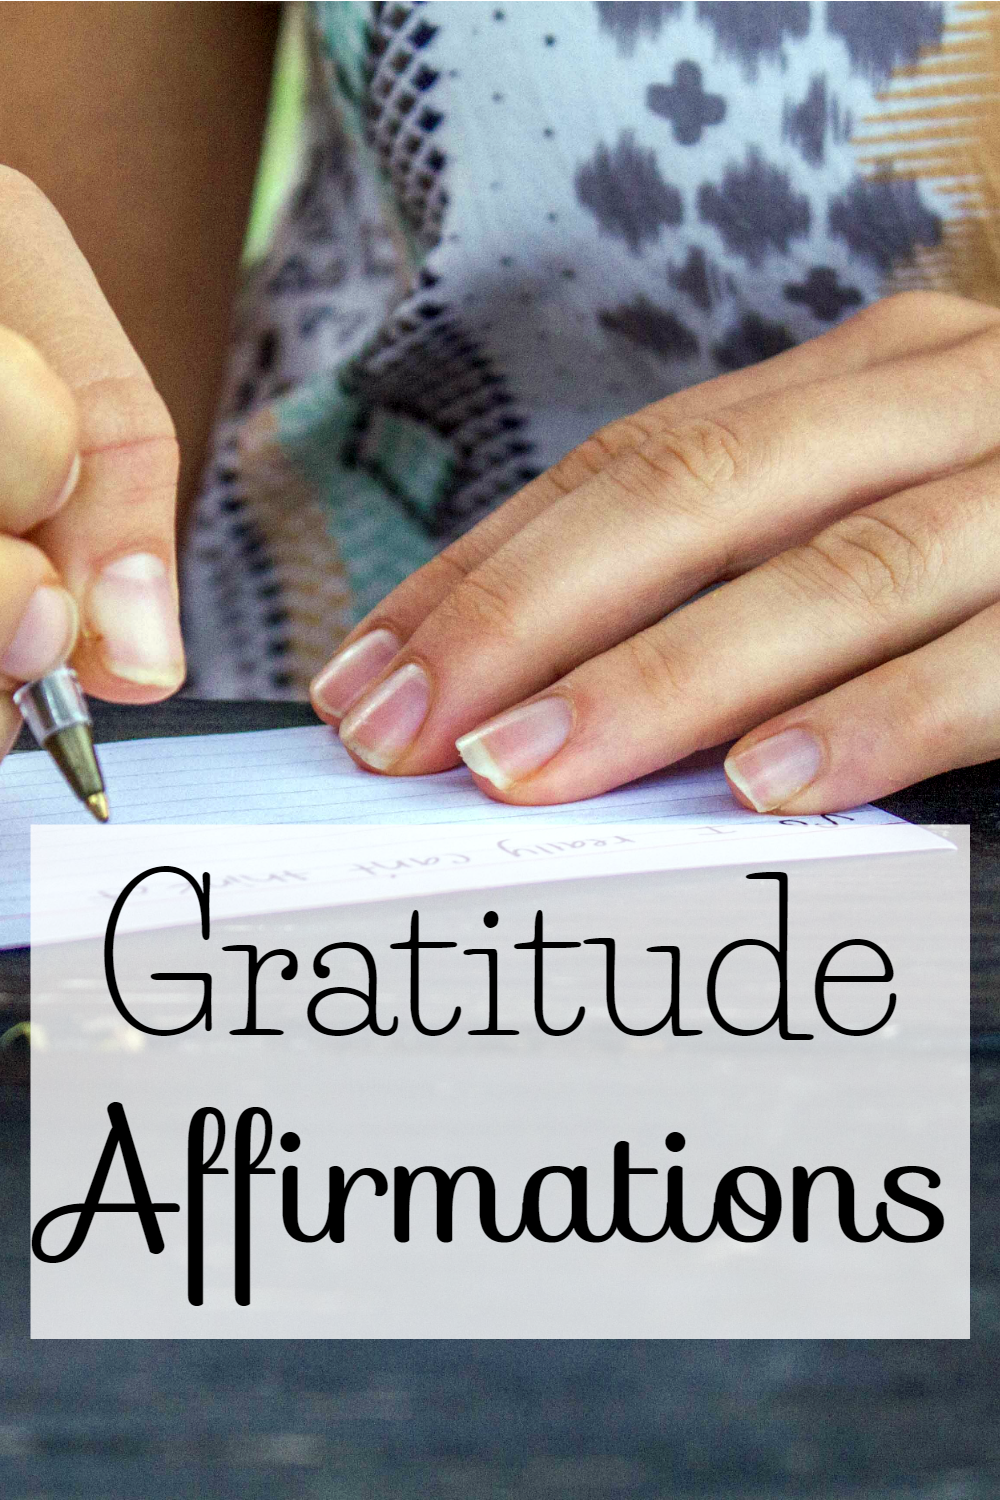 Daily Gratitude Affirmations at The Littlest Way